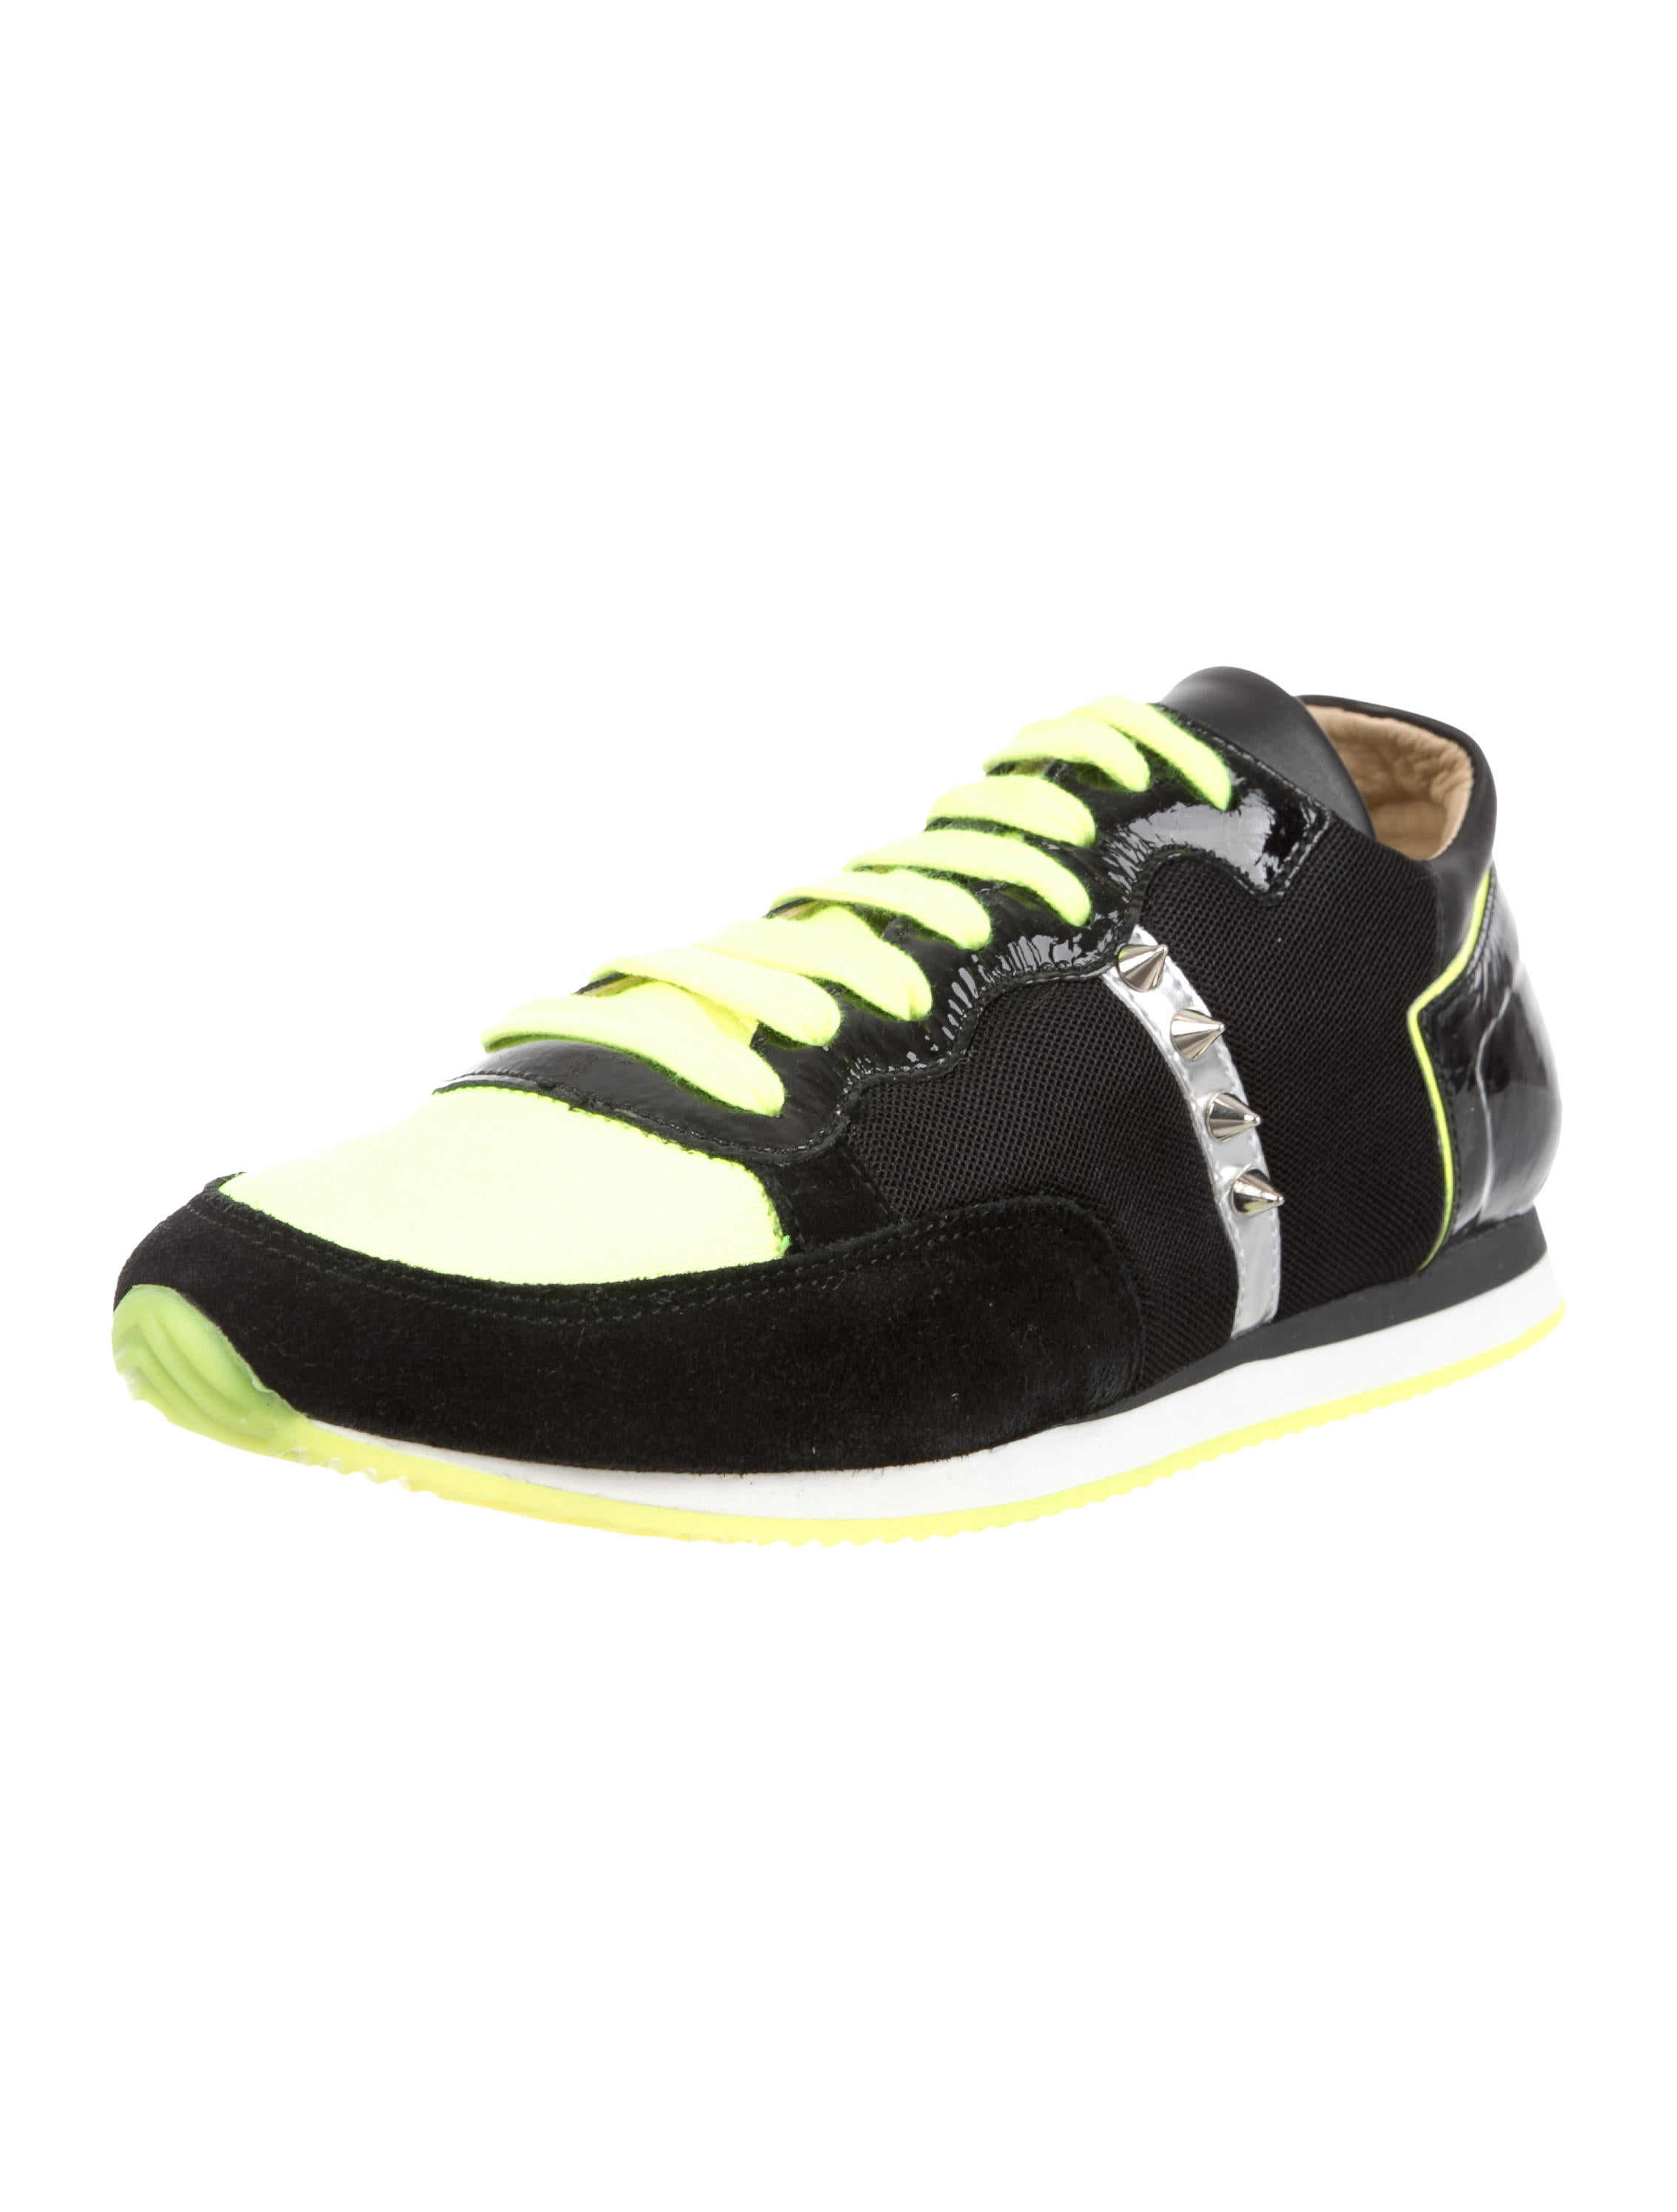 purchase online Ruthie Davis Round-Toe Low-Top Sneakers w/ Tags discount pre order buy cheap latest collections zpZZK